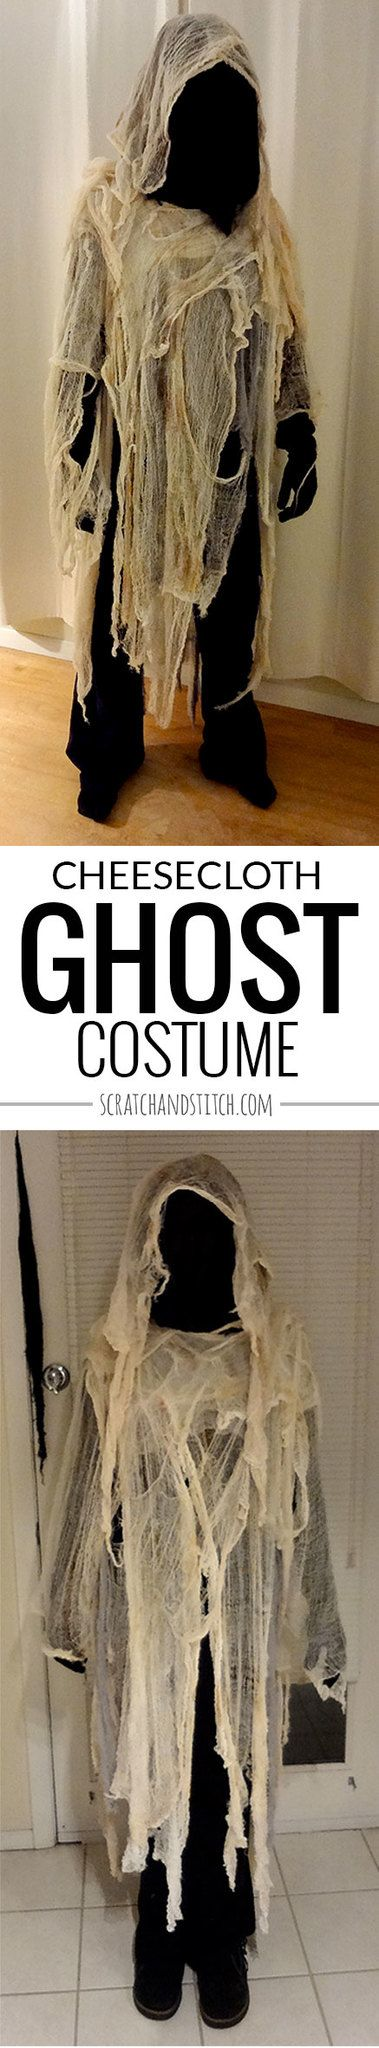 Cheesecloth Ghost Costume Pinterest Cheesecloth ghost, Ghost - halloween ghost costume ideas